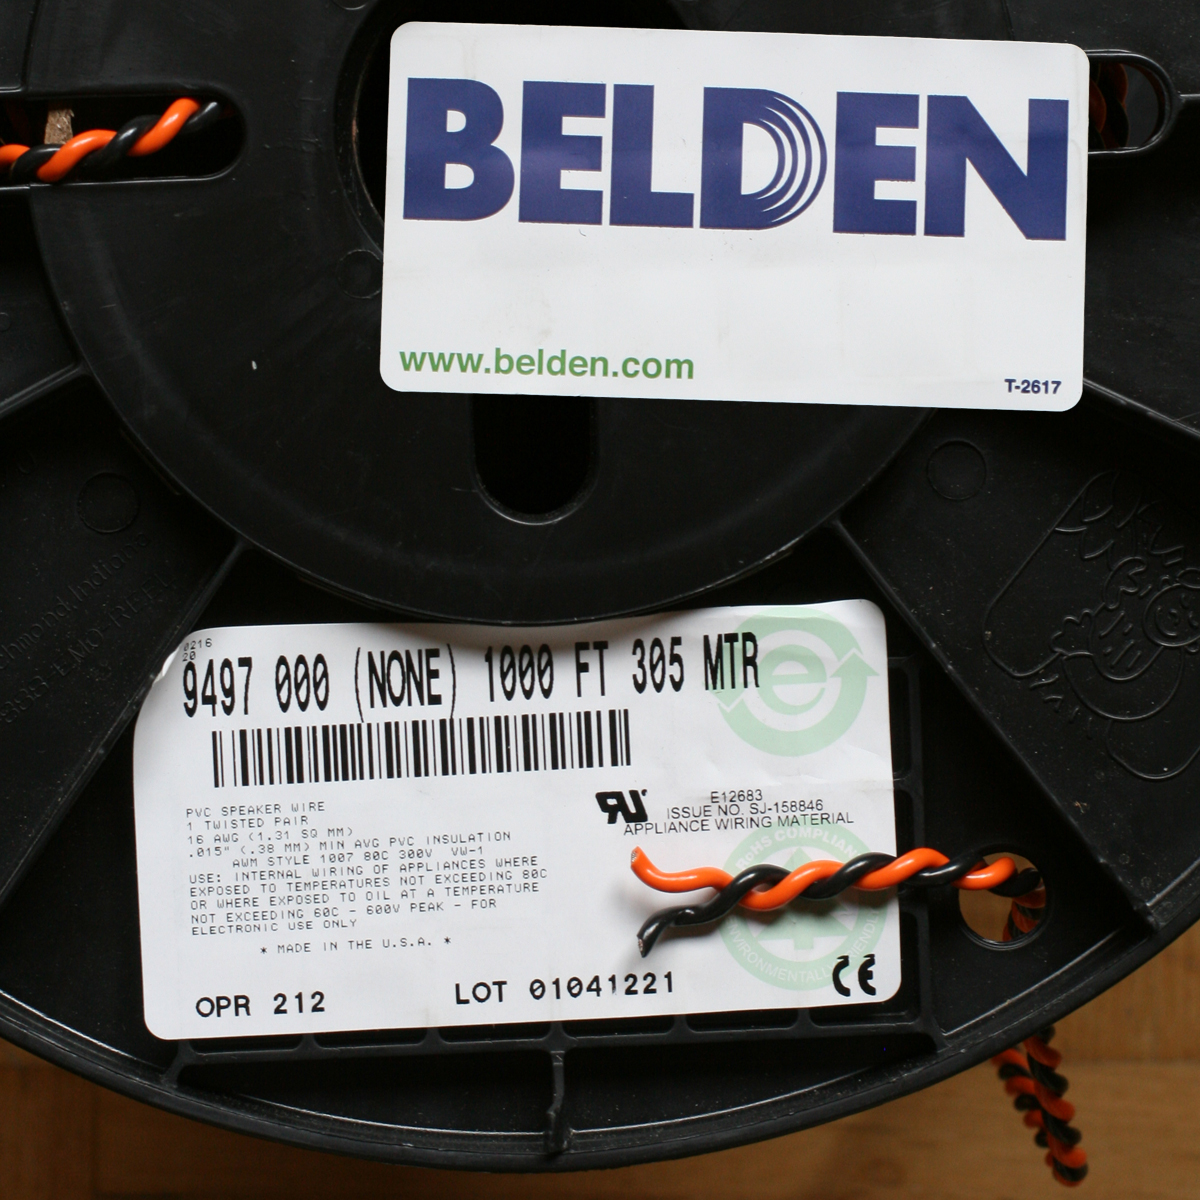 Cable Belden Shindo 9497